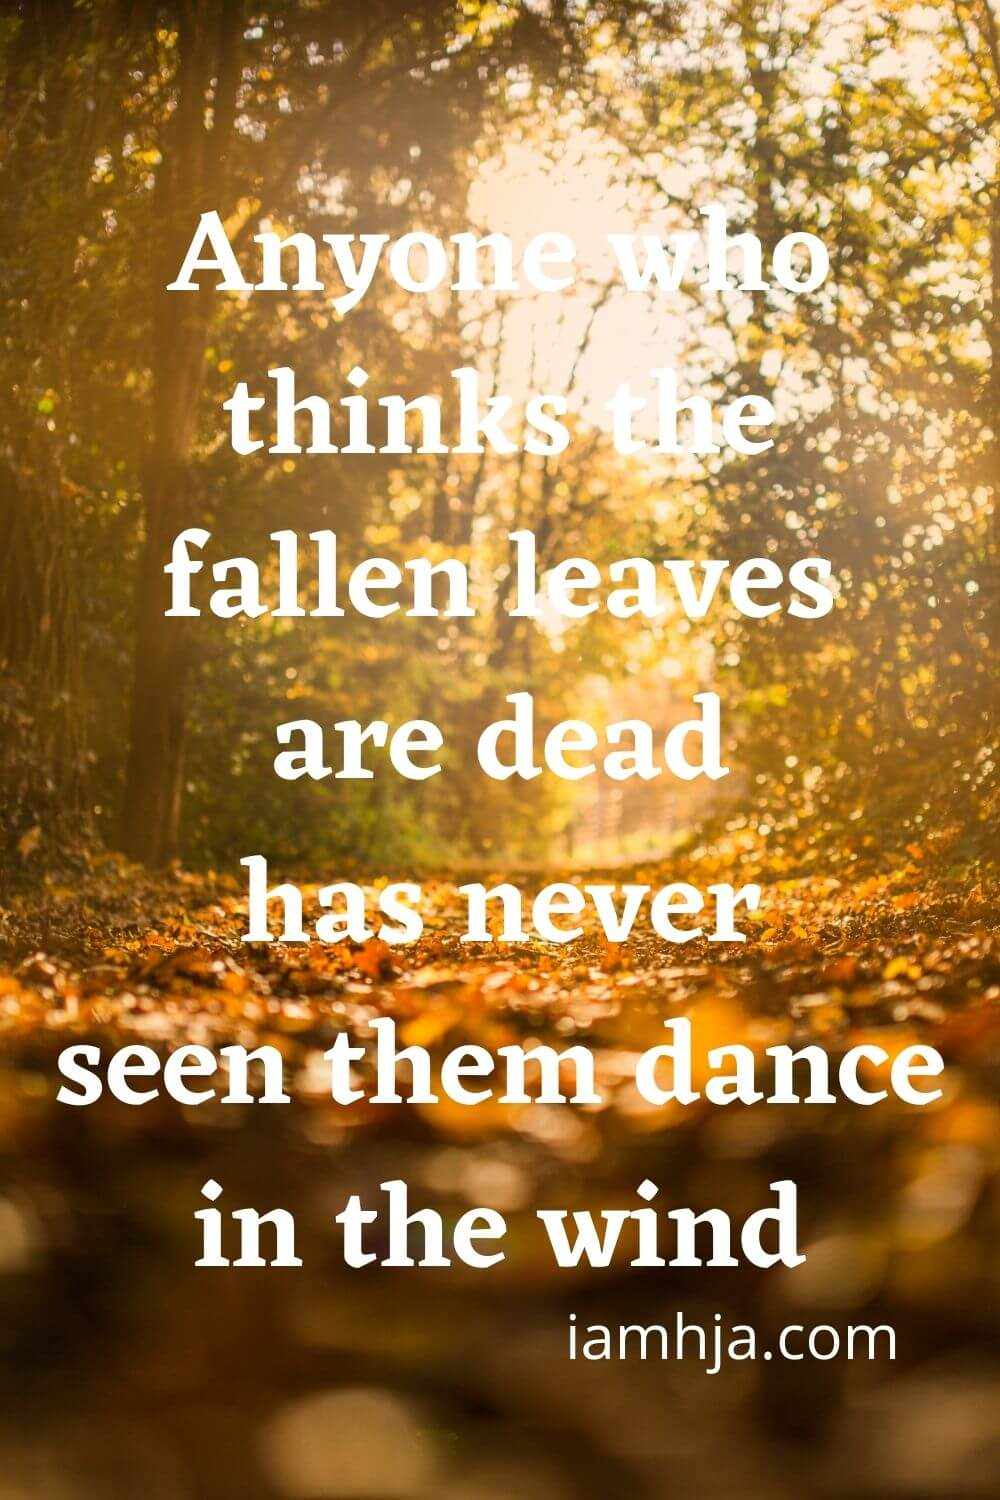 Anyone who thinks the fallen leaves are dead has never seen them dance in the wind